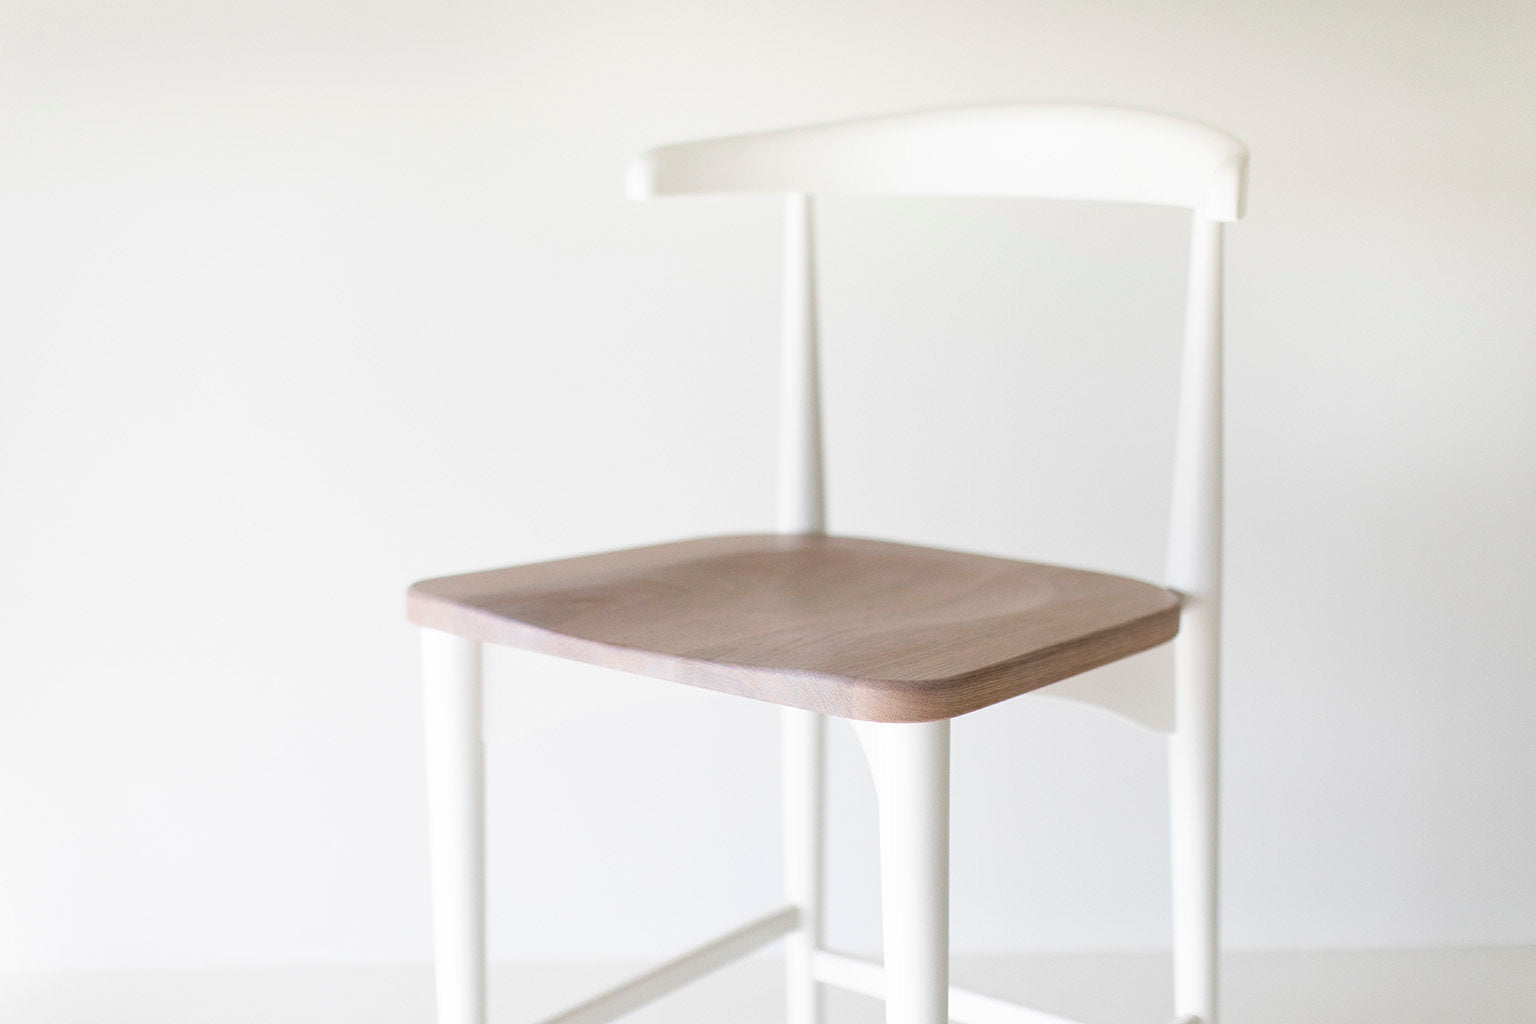 I07A7426-lawrence-peabody-white-bar-stools-06